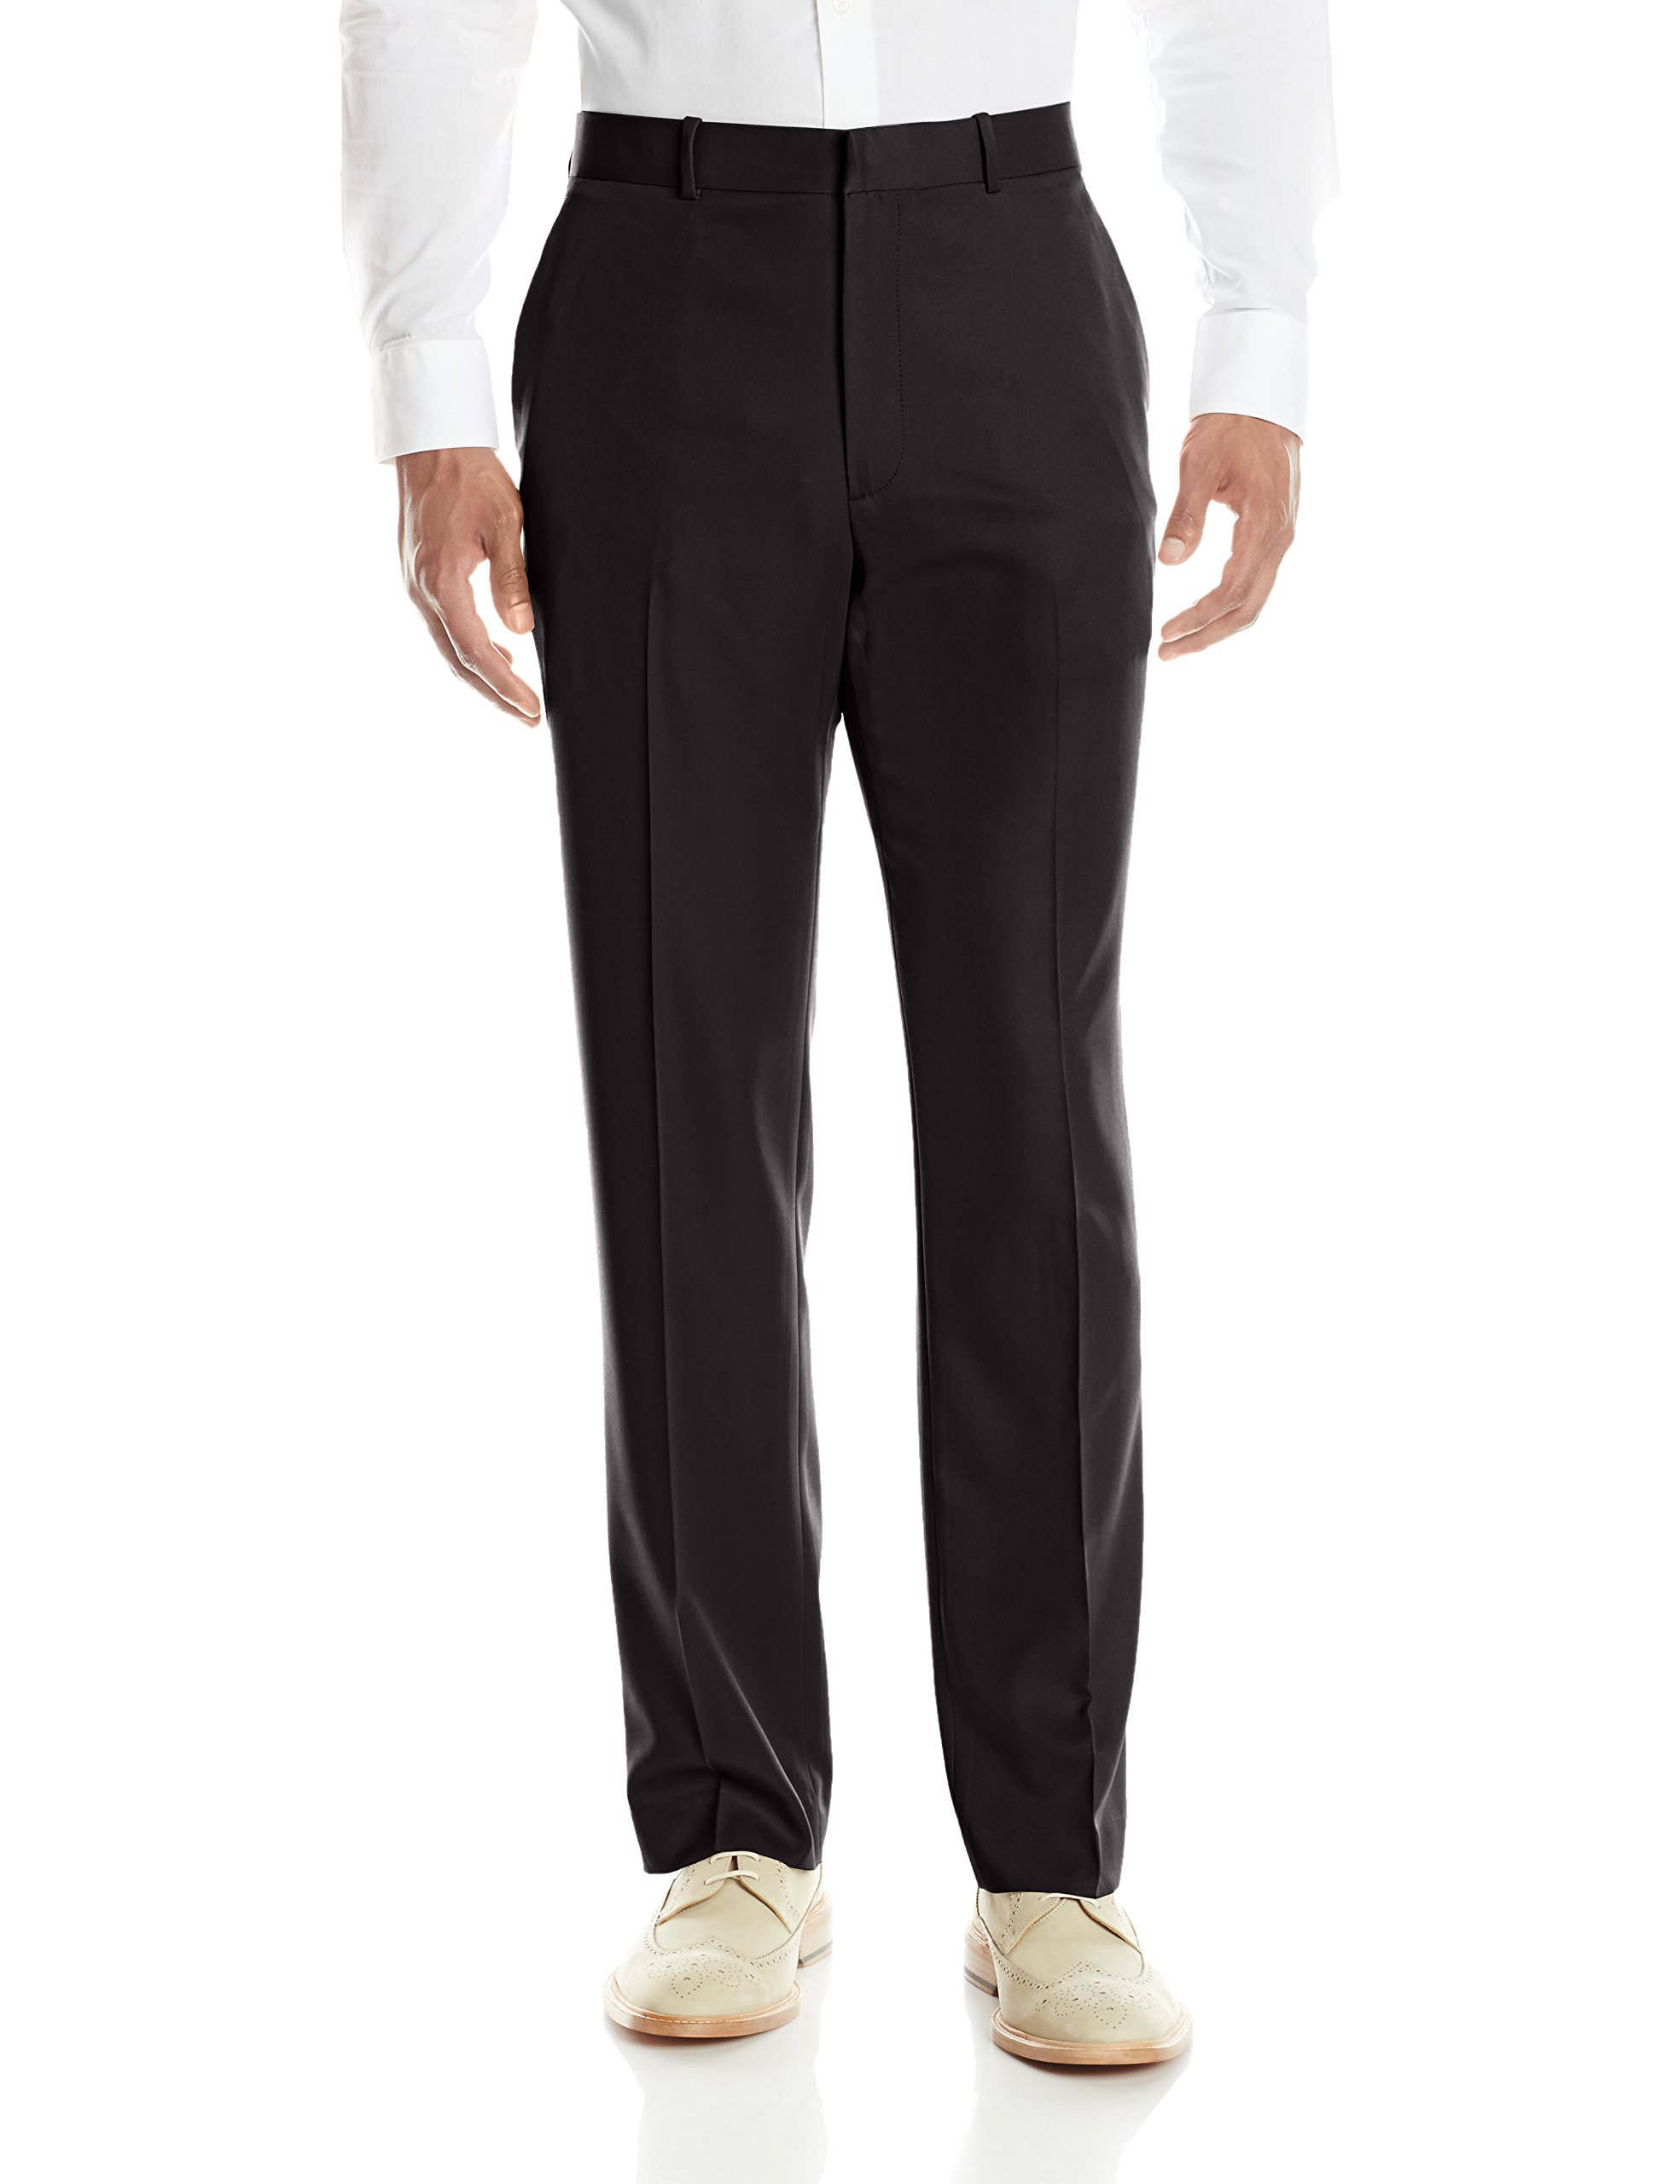 Perry Ellis Men's Portfolio Solid Modern Fit Performance Pant, Black, 34x32 by Perry Ellis